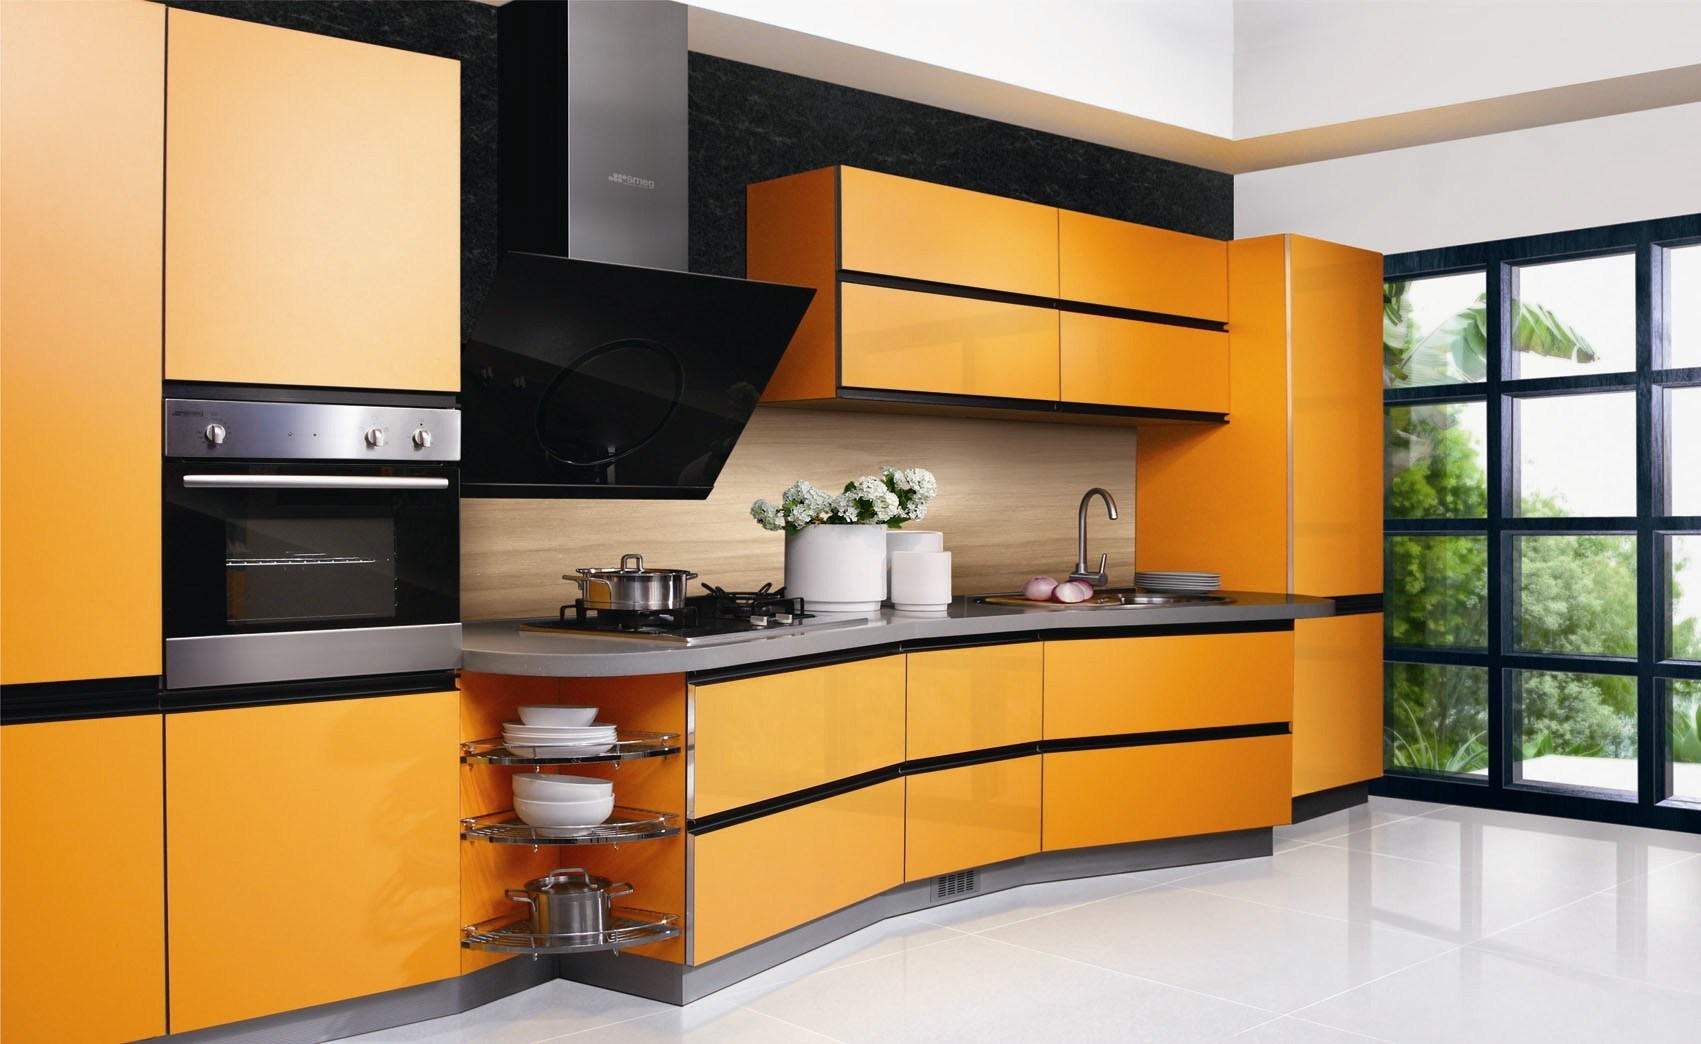 Kitchen Cabinets Made Simple China Hot Sale Small Kitchen Simple Design Kitchen Cabinet Photos